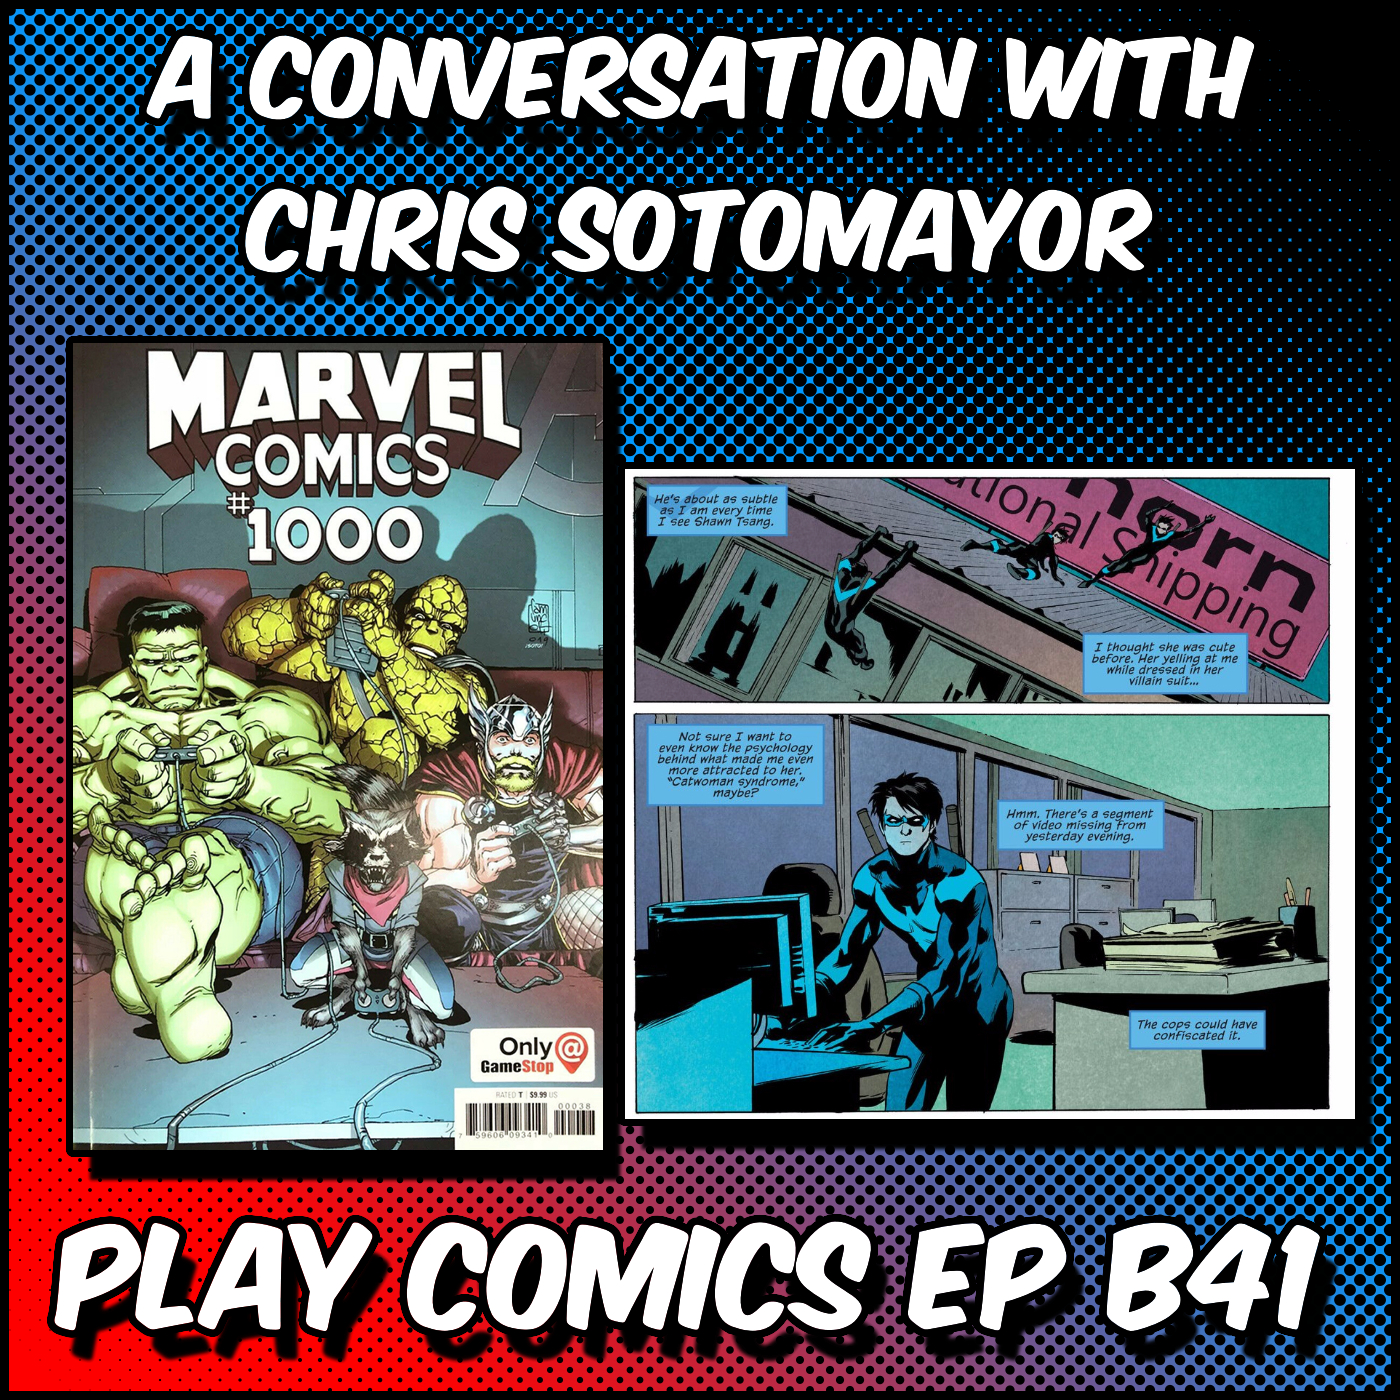 A Conversation with Chris Sotomayor